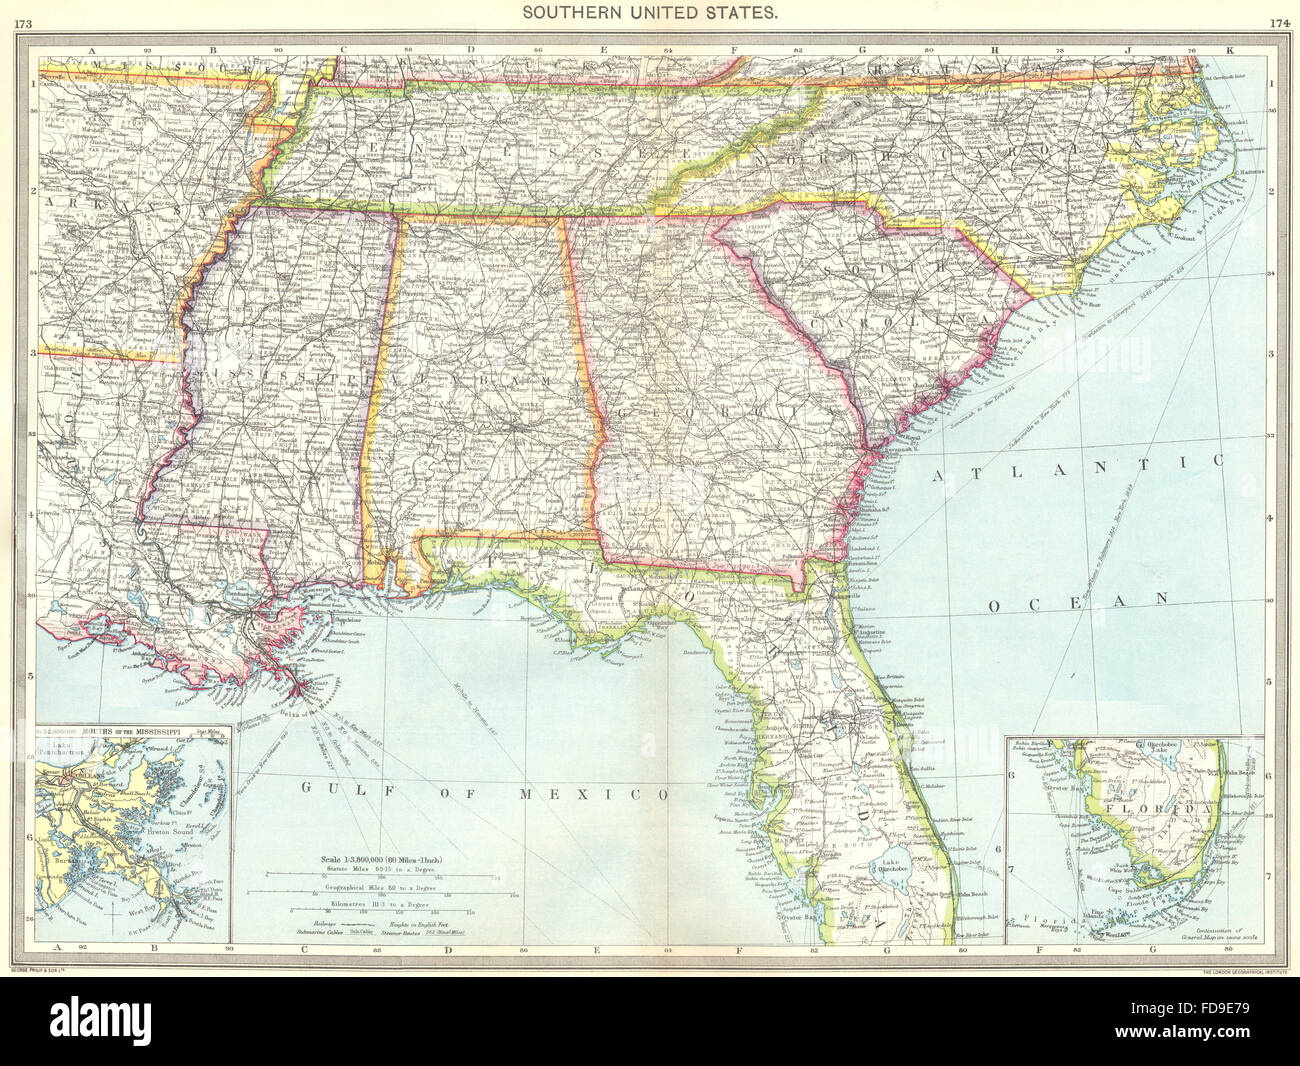 Map Of Southern Usa on